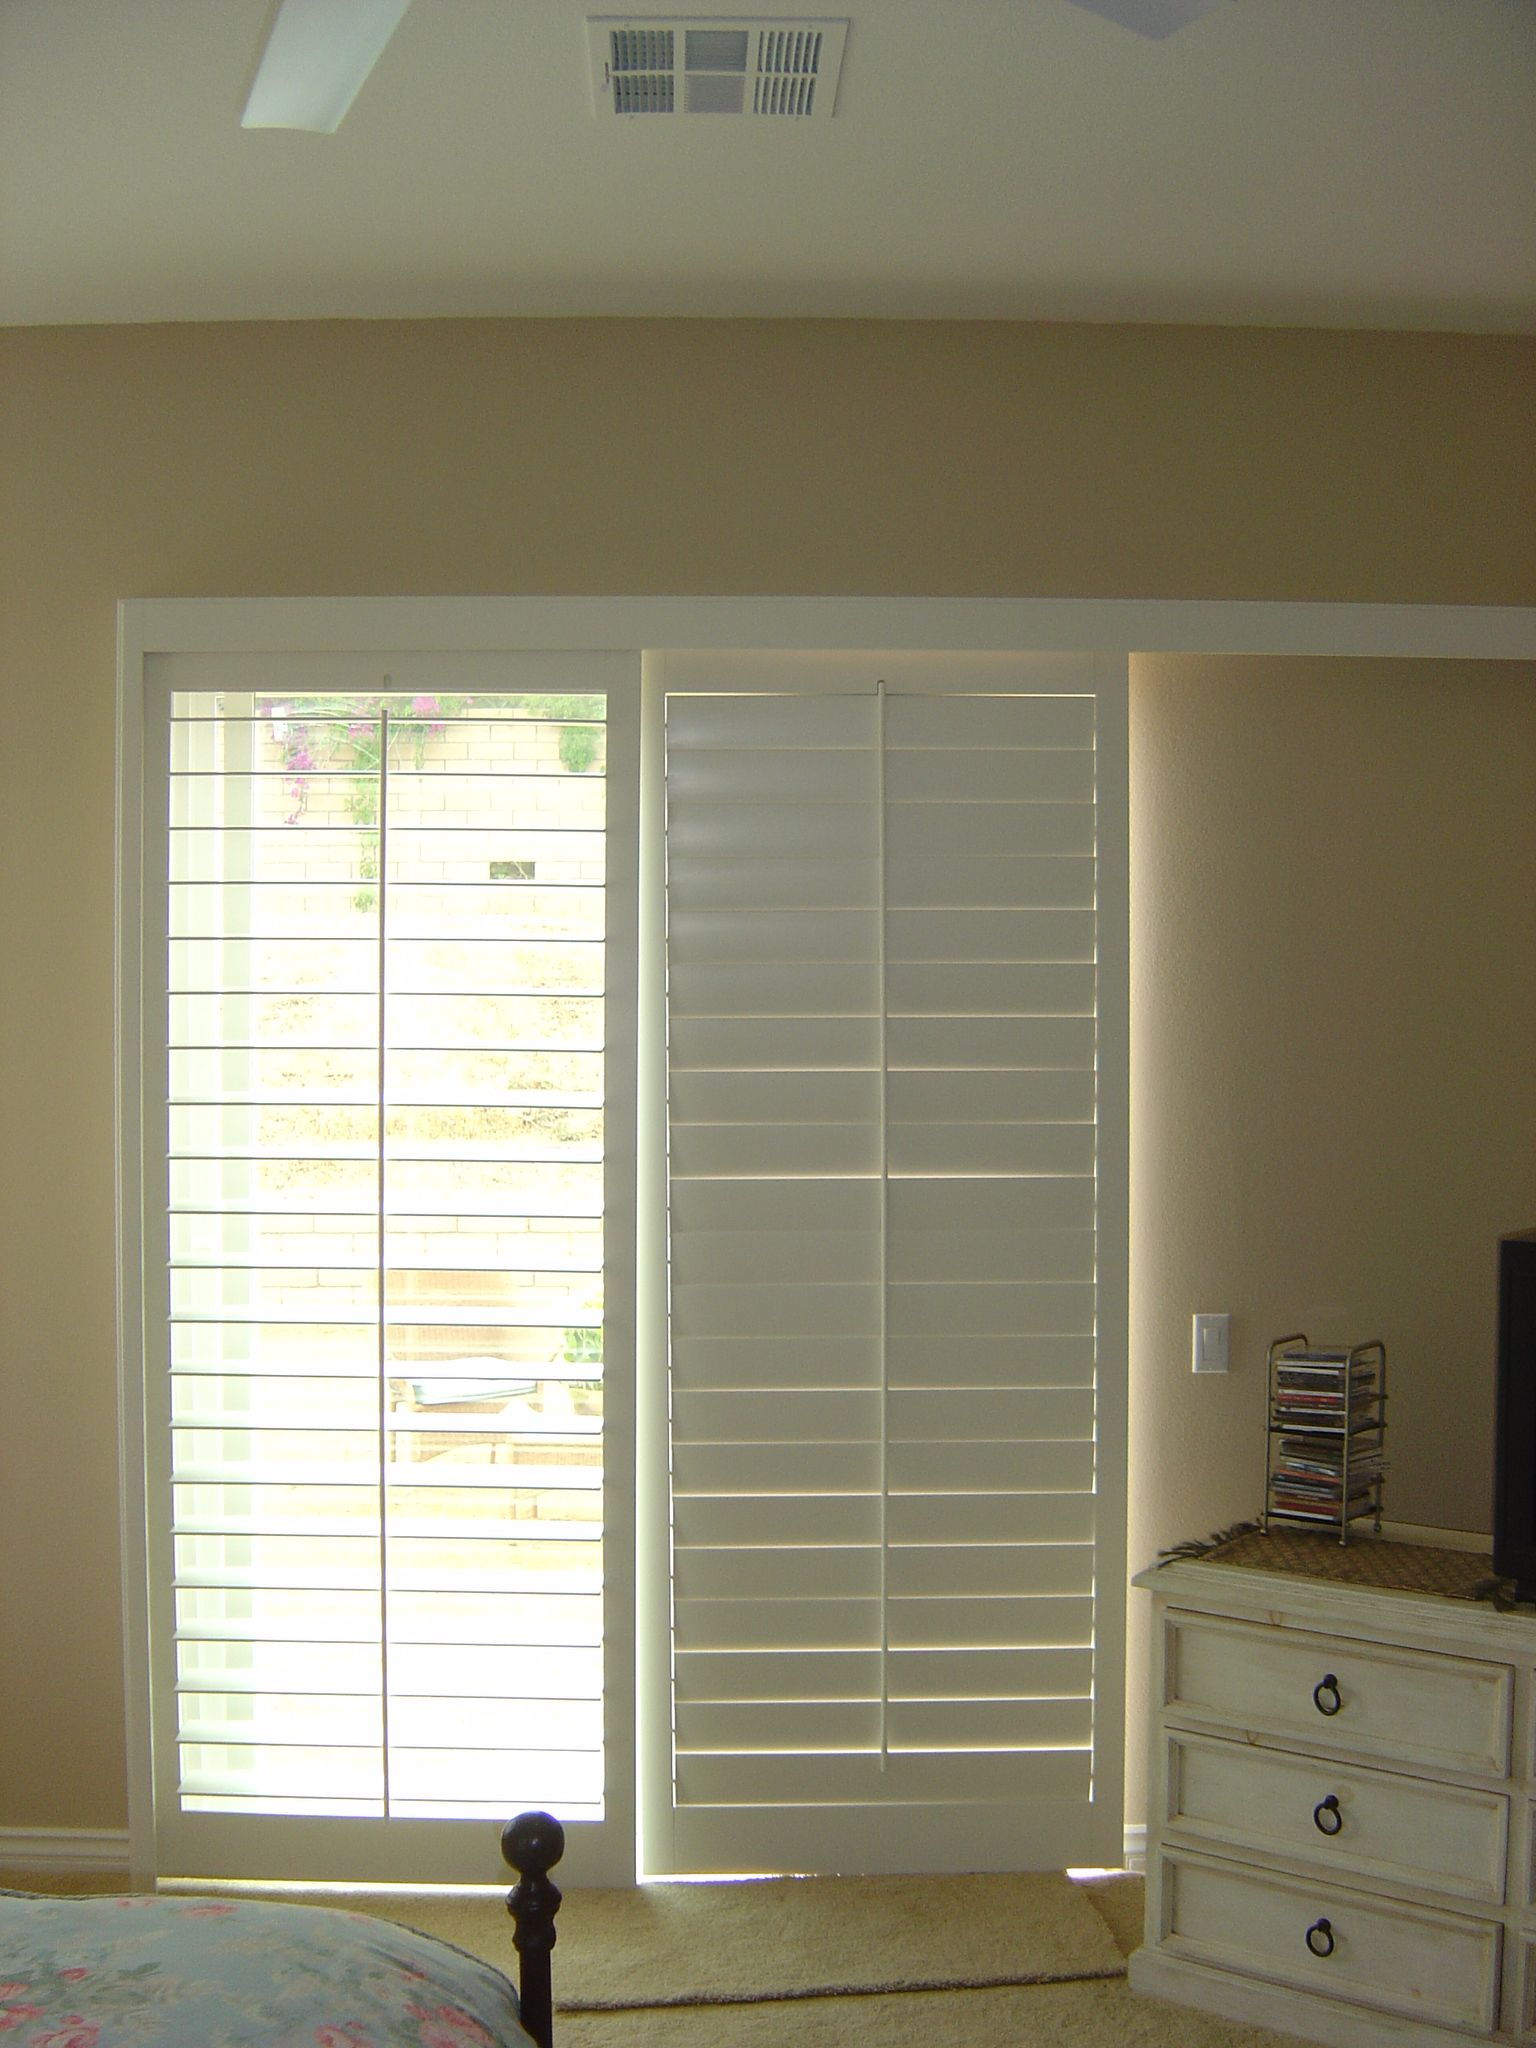 Choosing window treatments for sliding glass - Windows Window Treatments For Sliding Doors With Shutters On Sliding Glass Door Window Treatments For Sliding Doors Are Must You Choose In Good Design And